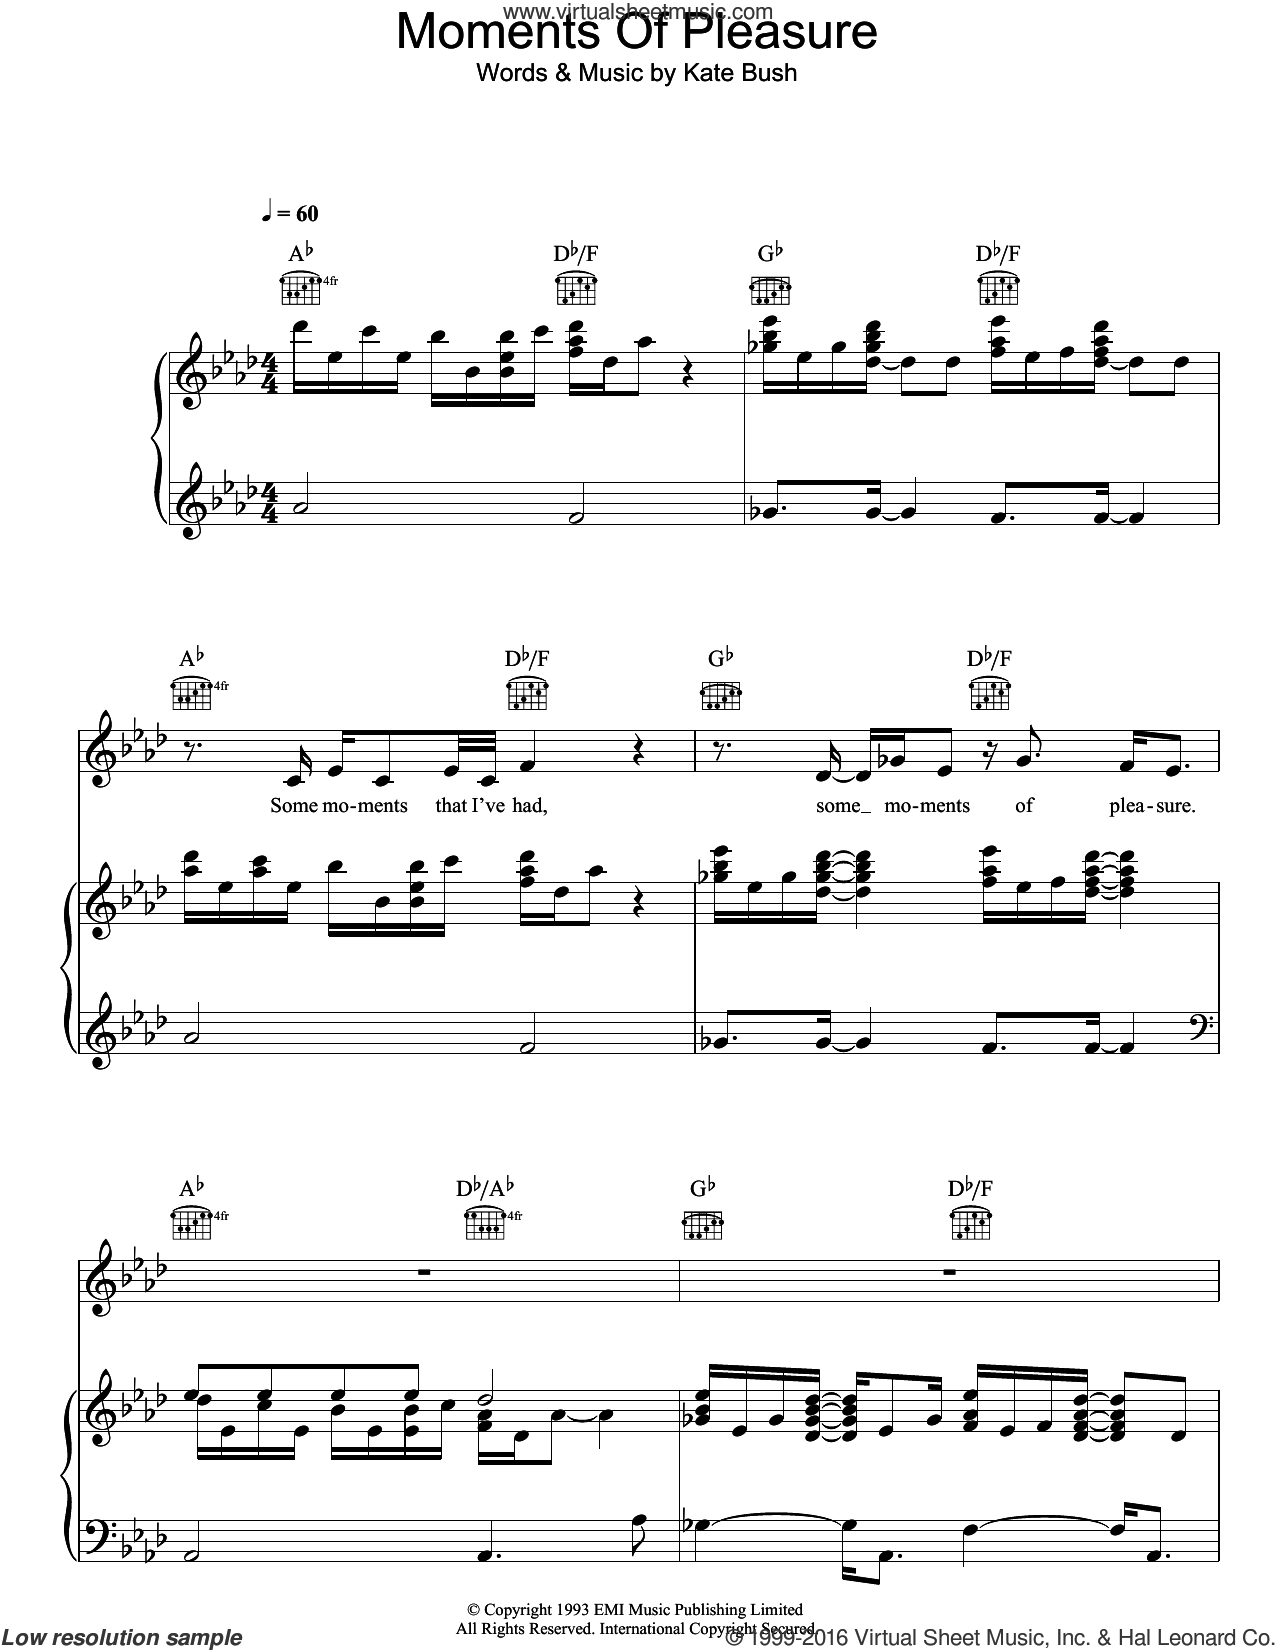 Moments Of Pleasure sheet music for voice, piano or guitar by Kate Bush, intermediate skill level